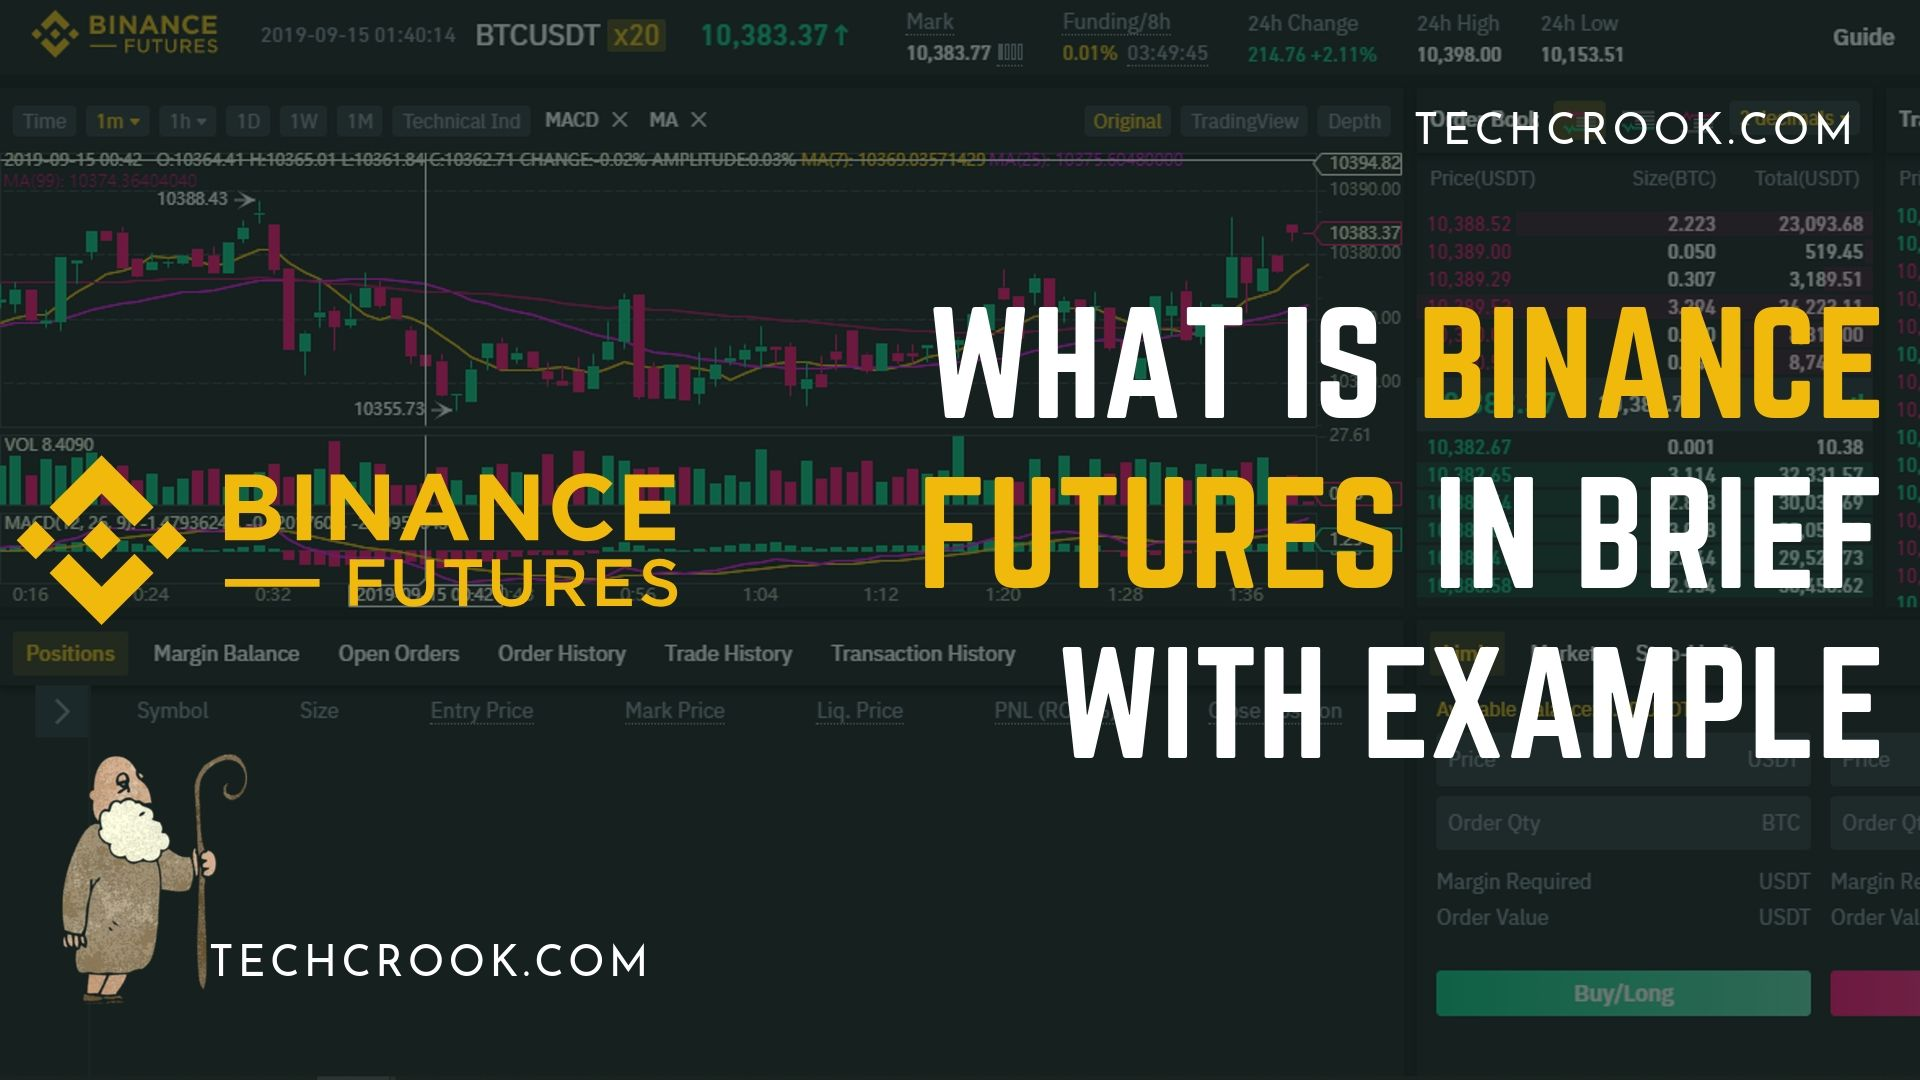 What is Binance Futures in brief with example and how to get max out of it